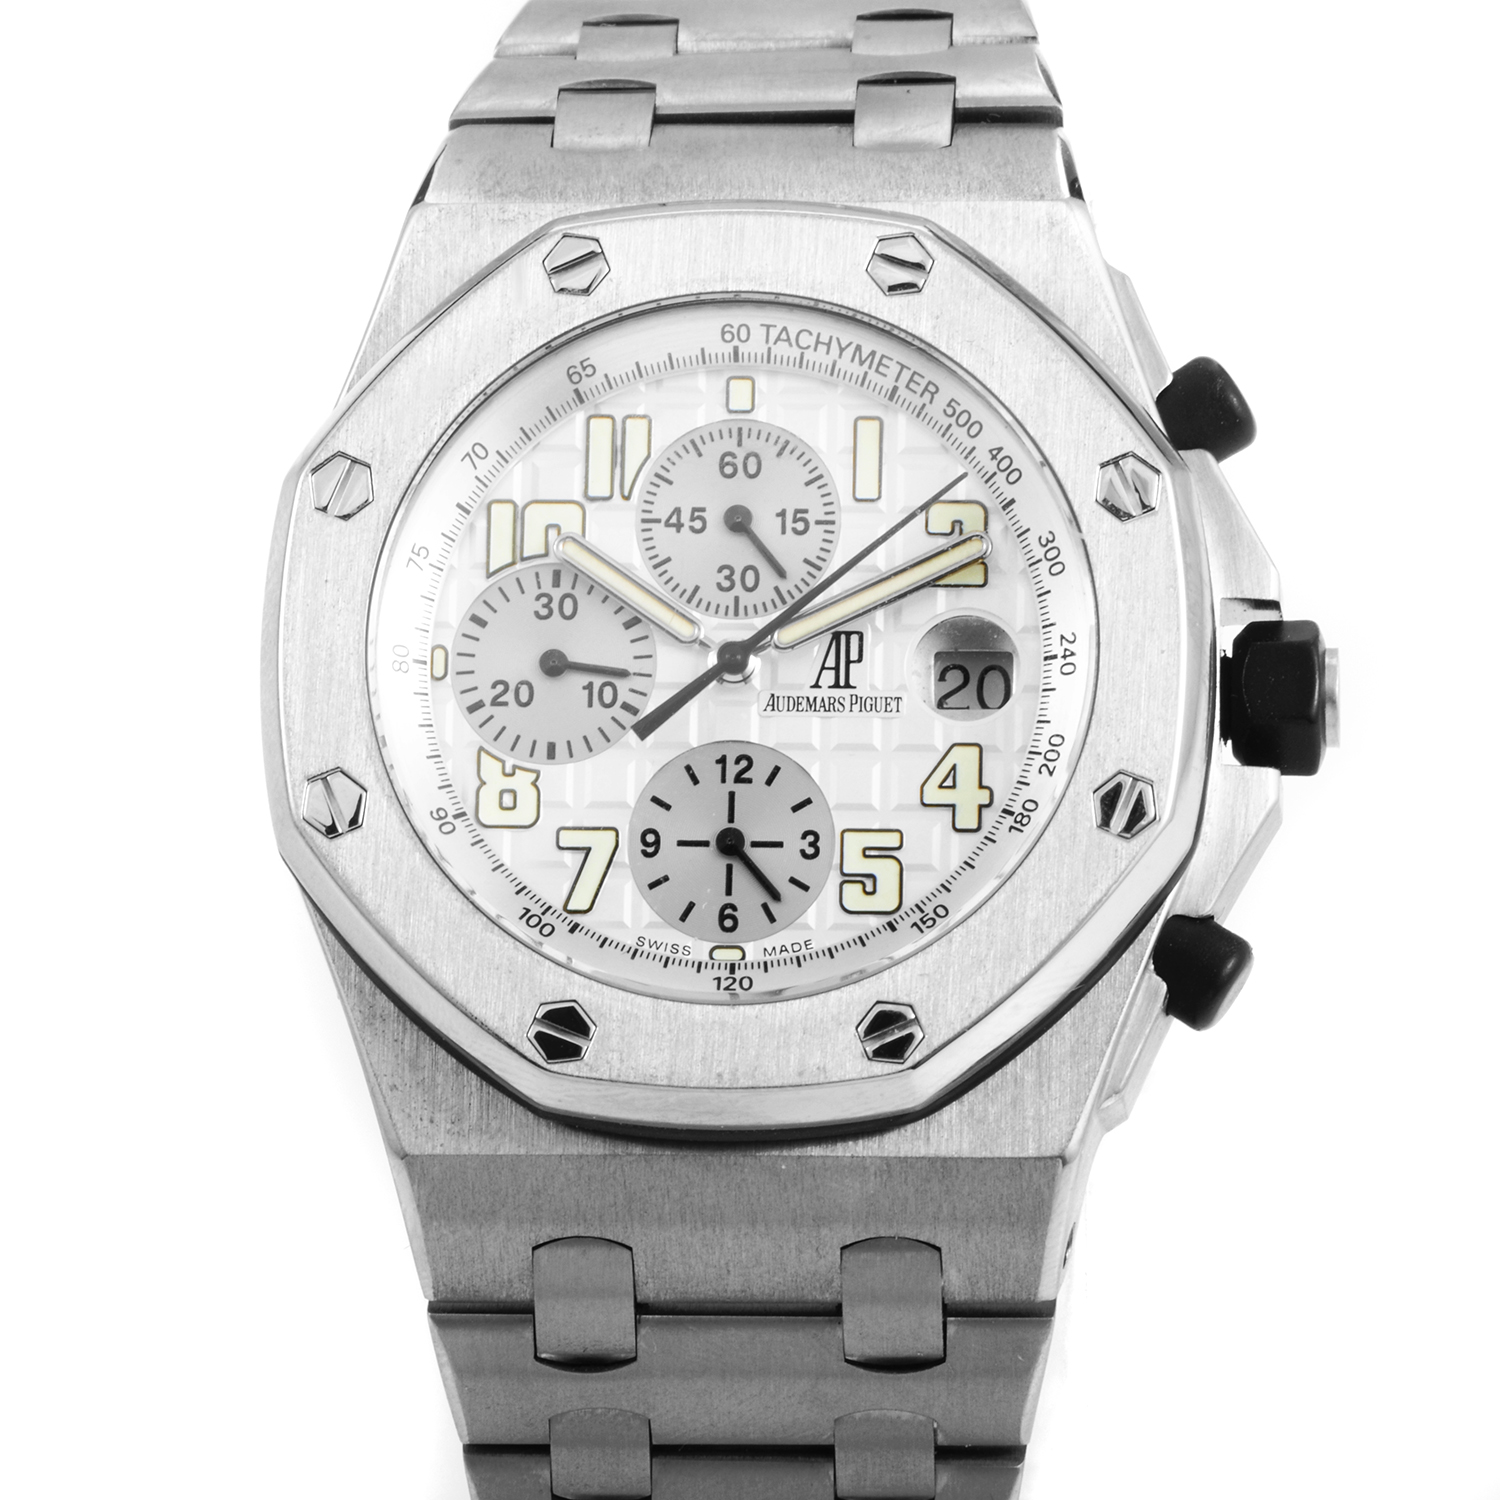 Royal Oak Offshore Chronograph 25721ST.OO.1000ST.07